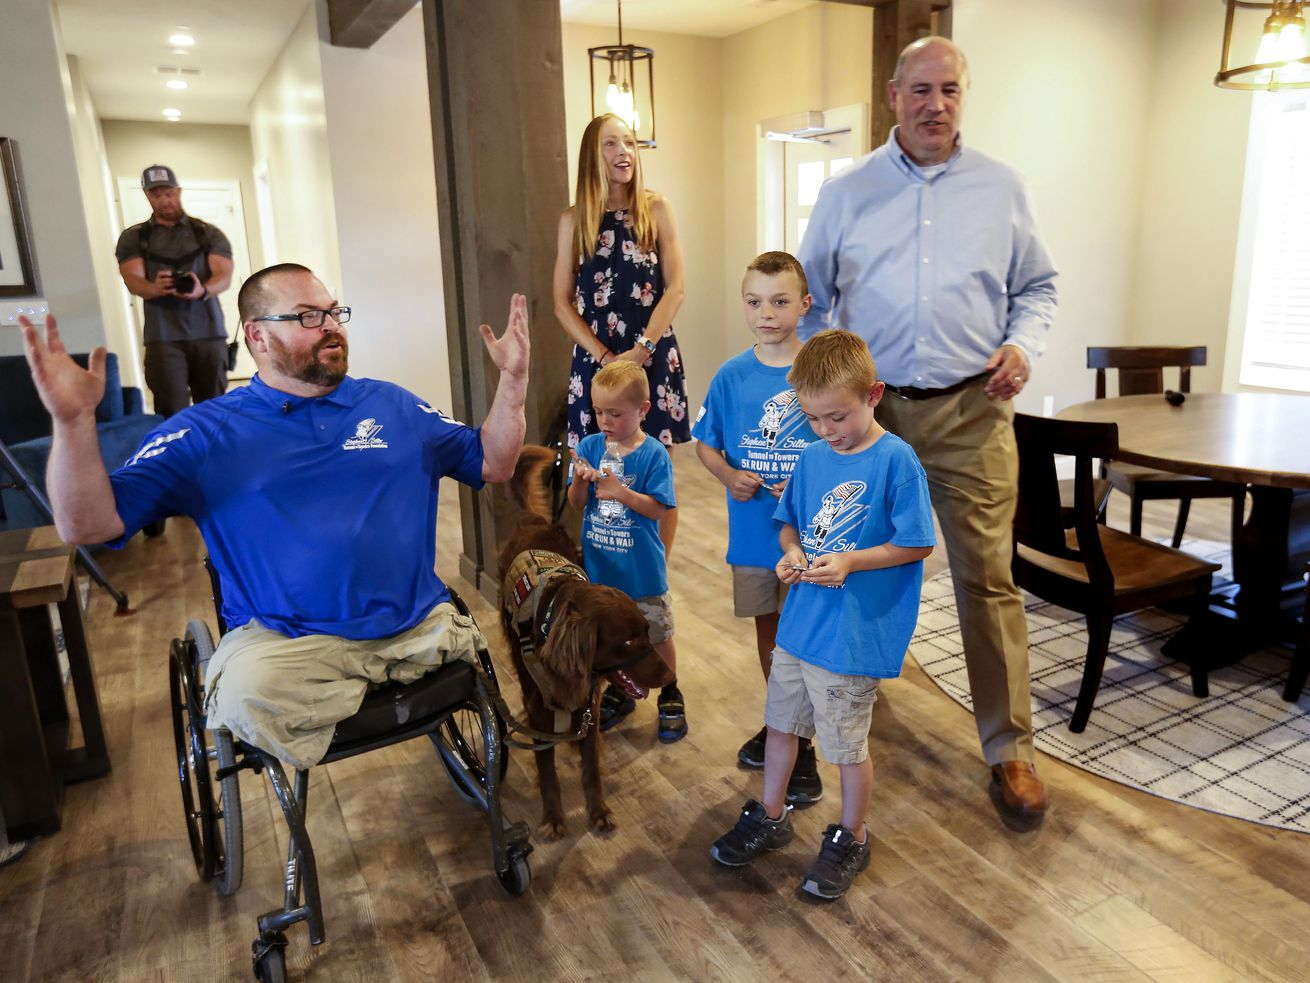 'I never thought anything could move me to tears': Purple Heart vet and family receive new home on eve of Independence Day